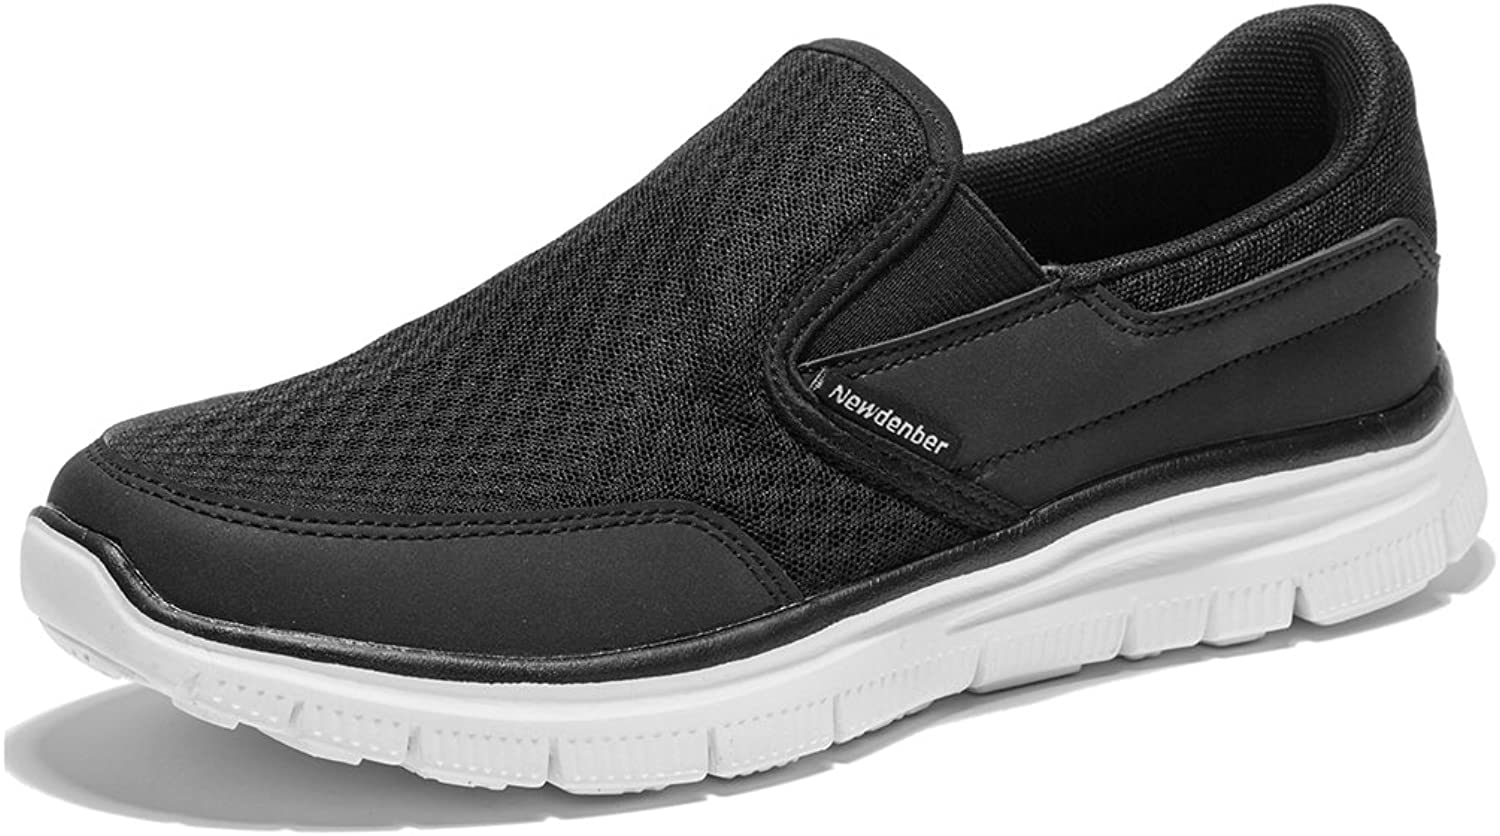 NewDenBer Sport Men's Casual Lightweight Slip-On Sneaker